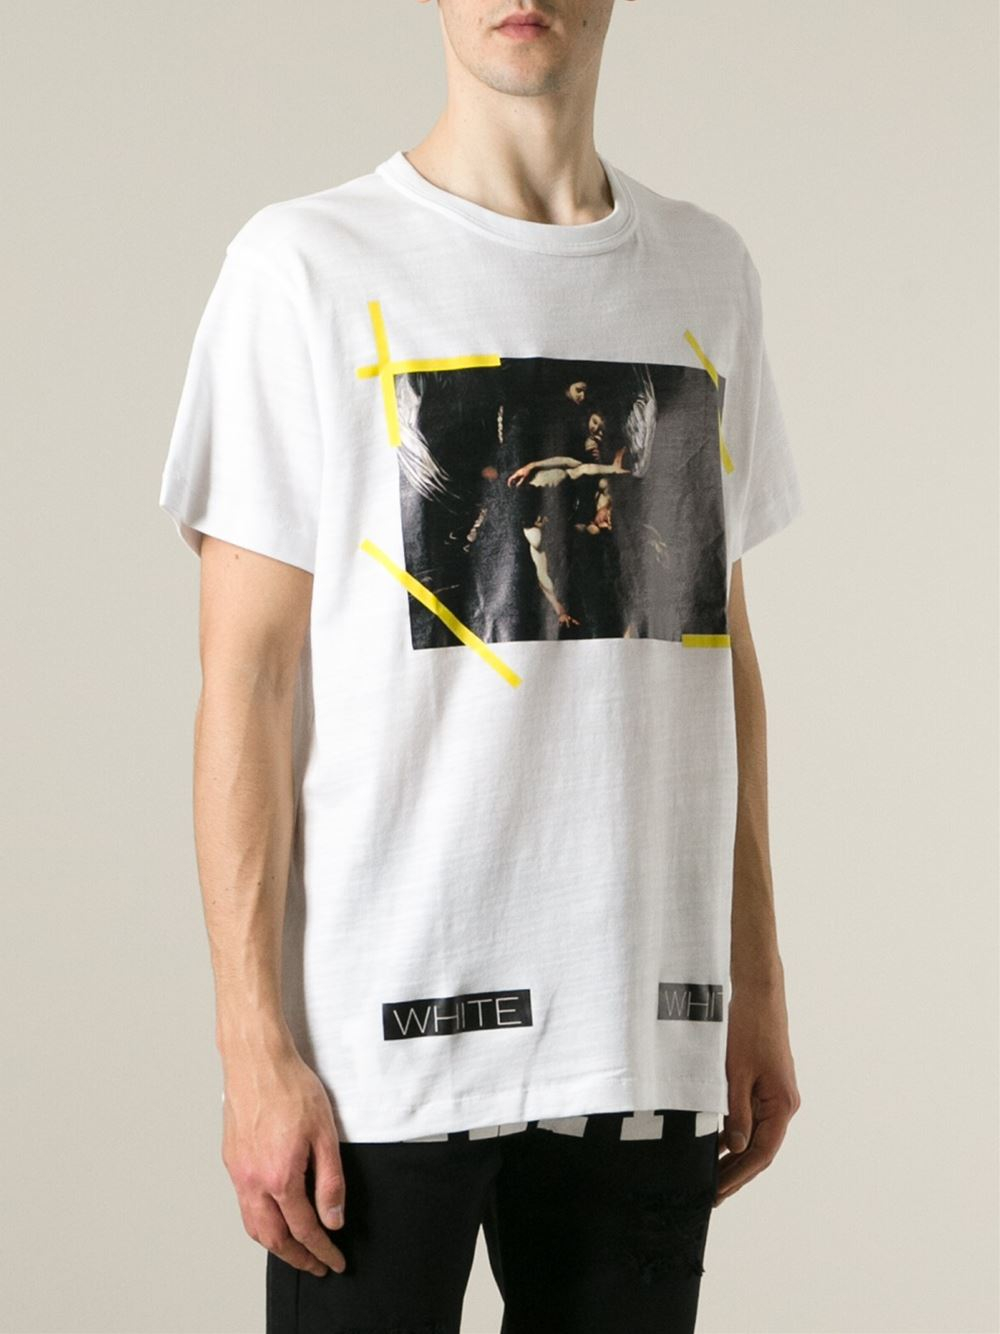 lyst off white c o virgil abloh caravaggio print t shirt in white for men. Black Bedroom Furniture Sets. Home Design Ideas